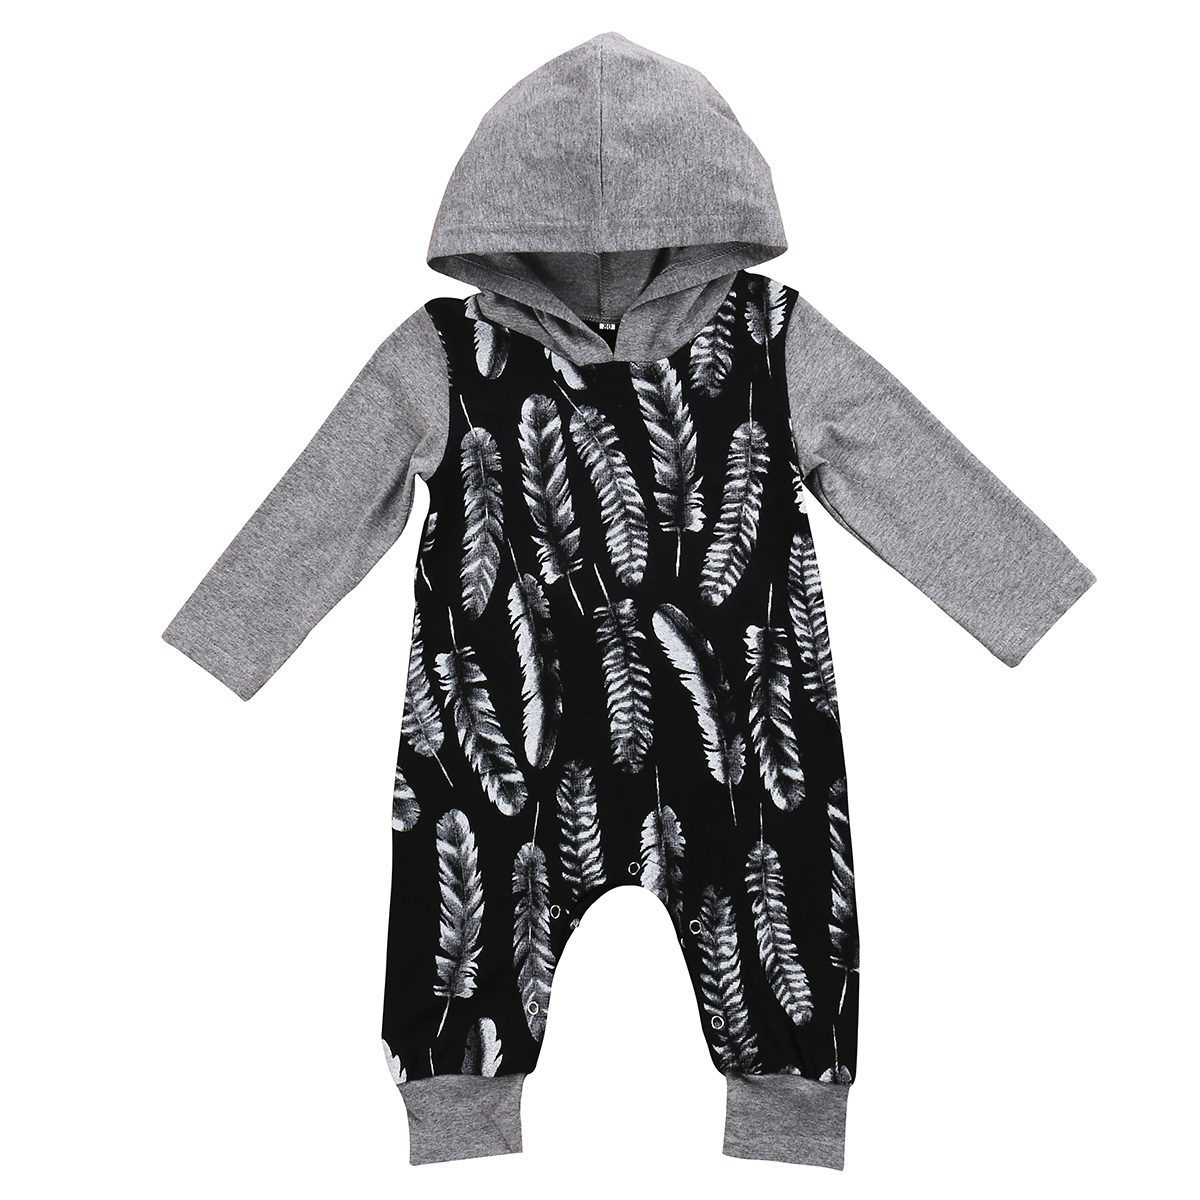 NEW Infant Baby Boys Clothes Long Sleeve Cotton Romper Cute Hooded New Rompers Outfit Clothing Baby Boy US jjlkids baby boys clothing set 100% cotton brand boy tracksuit long sleeve fashion 2015 new arrival children outfit